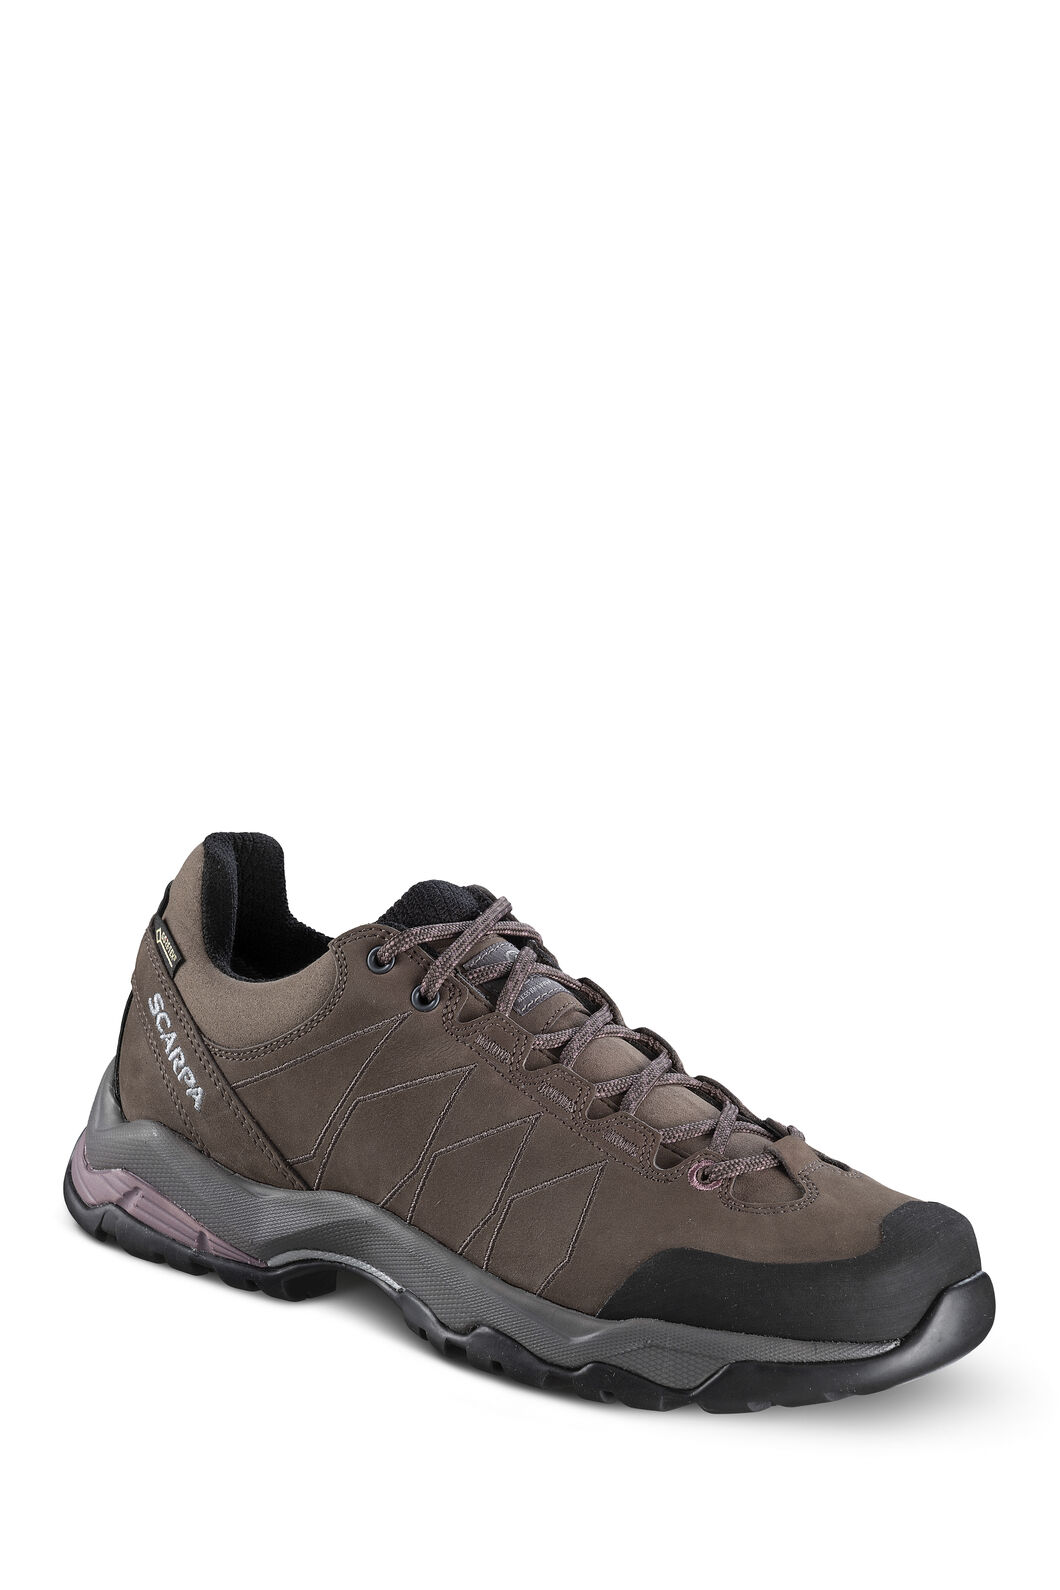 Scarpa Moraine Plus GTX Hiking Shoes - Women's, Charcoal/Dark Plum, hi-res